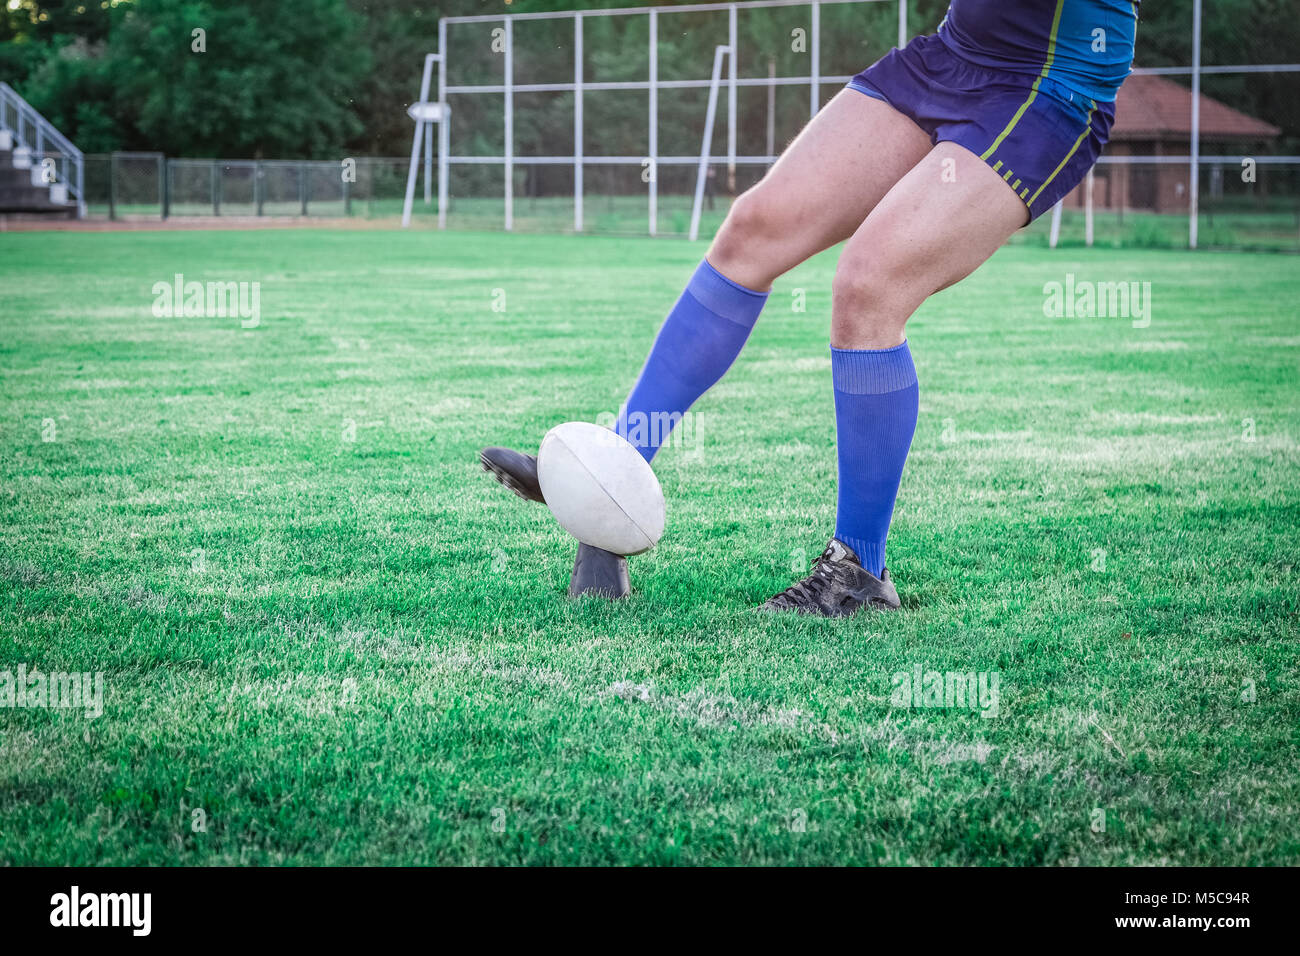 Rugby player kicking the ball for goal at stadium - Stock Image